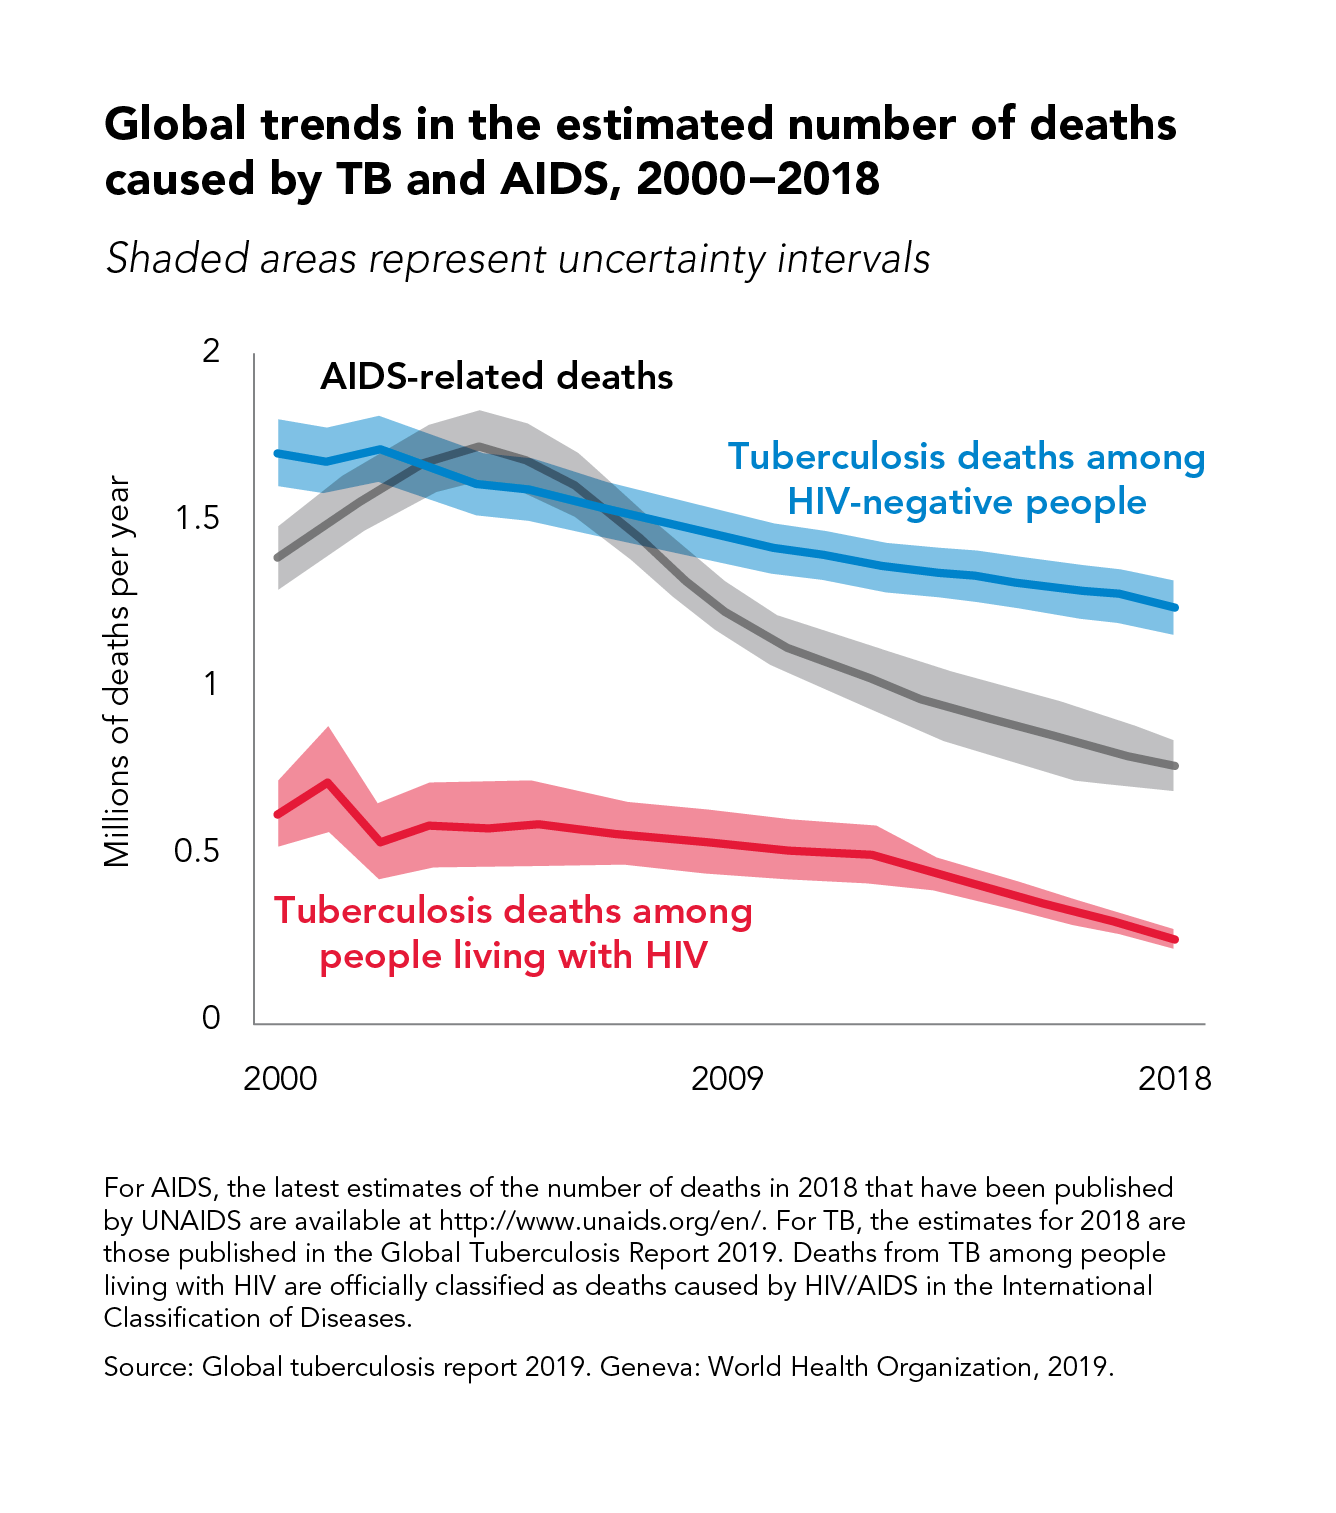 Global trends in the estimated number of deaths